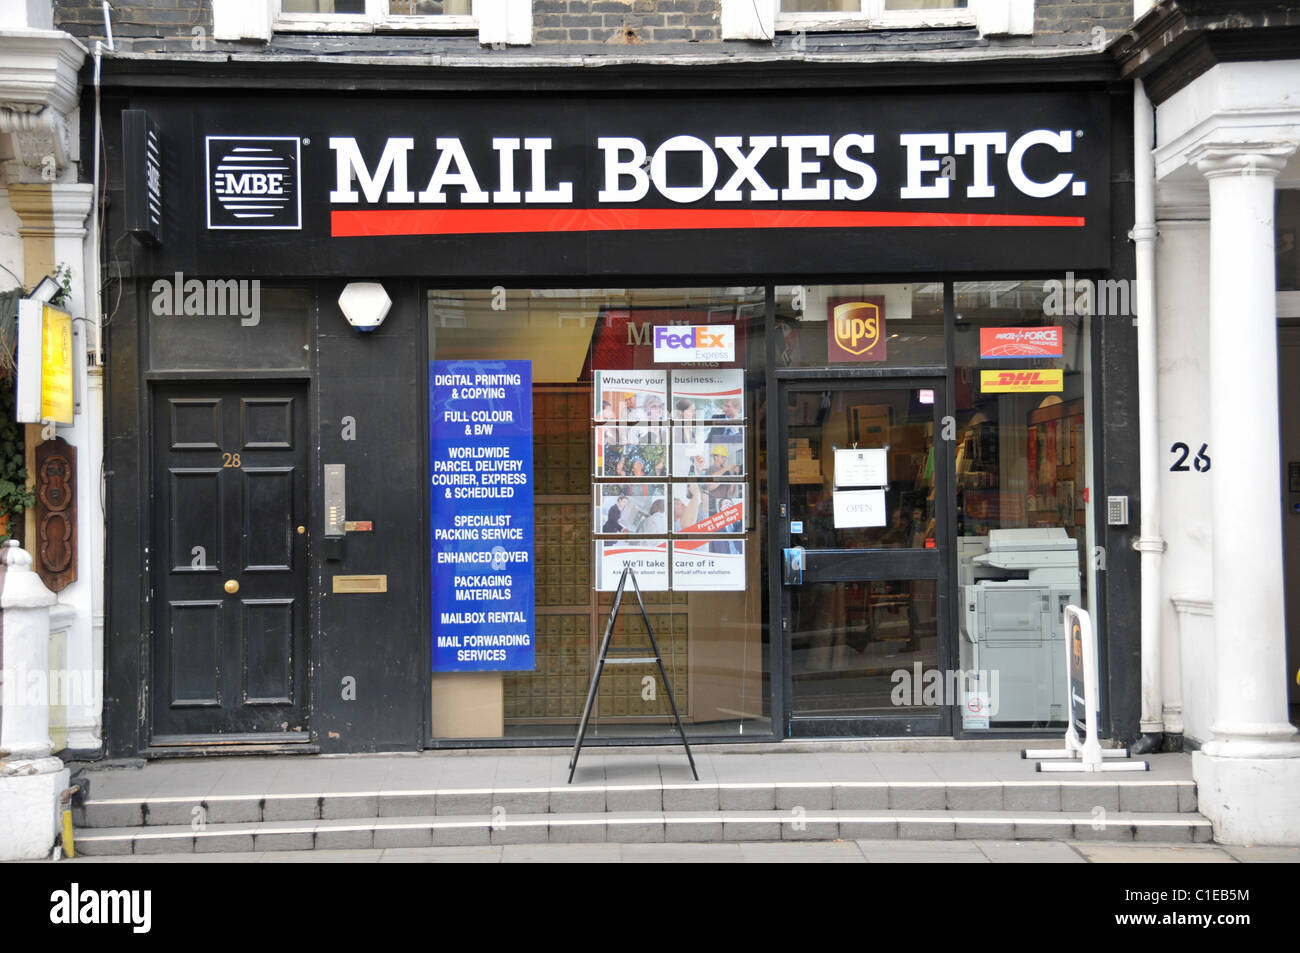 Mail Boxes Etc mail box services commercial private mail collection - Stock Image